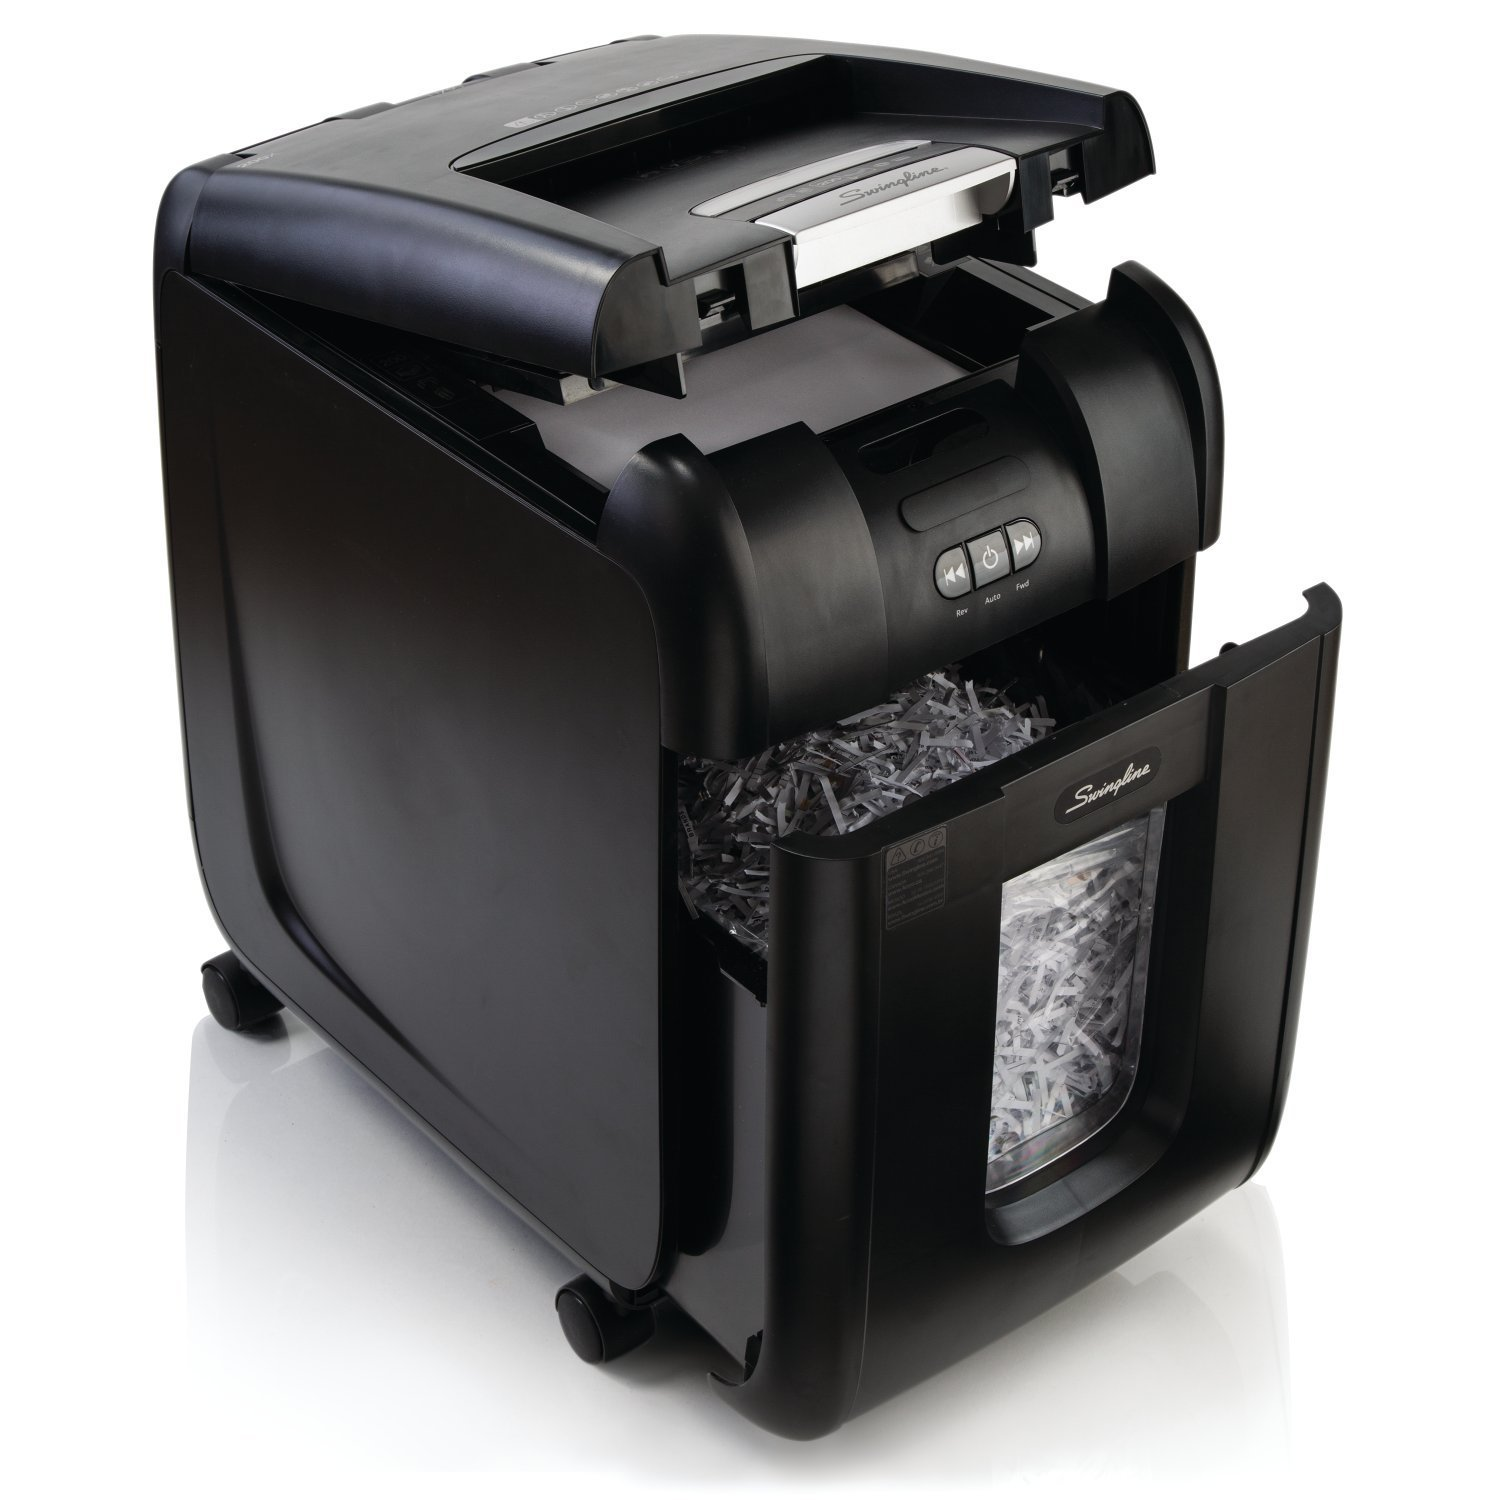 Swingline Paper Shredder